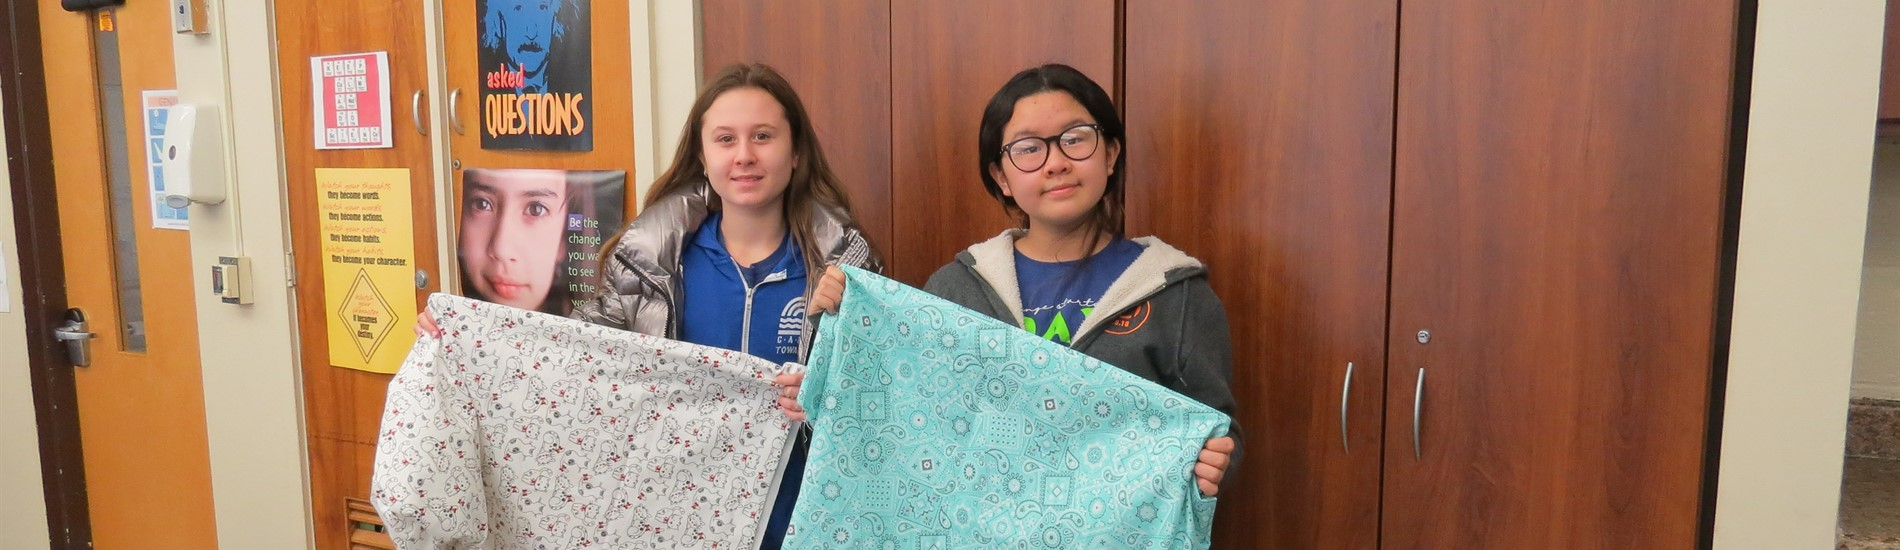 "MLK Service Activity - students sew pillowcases for the organization ""Ryan's Case for Smiles"""